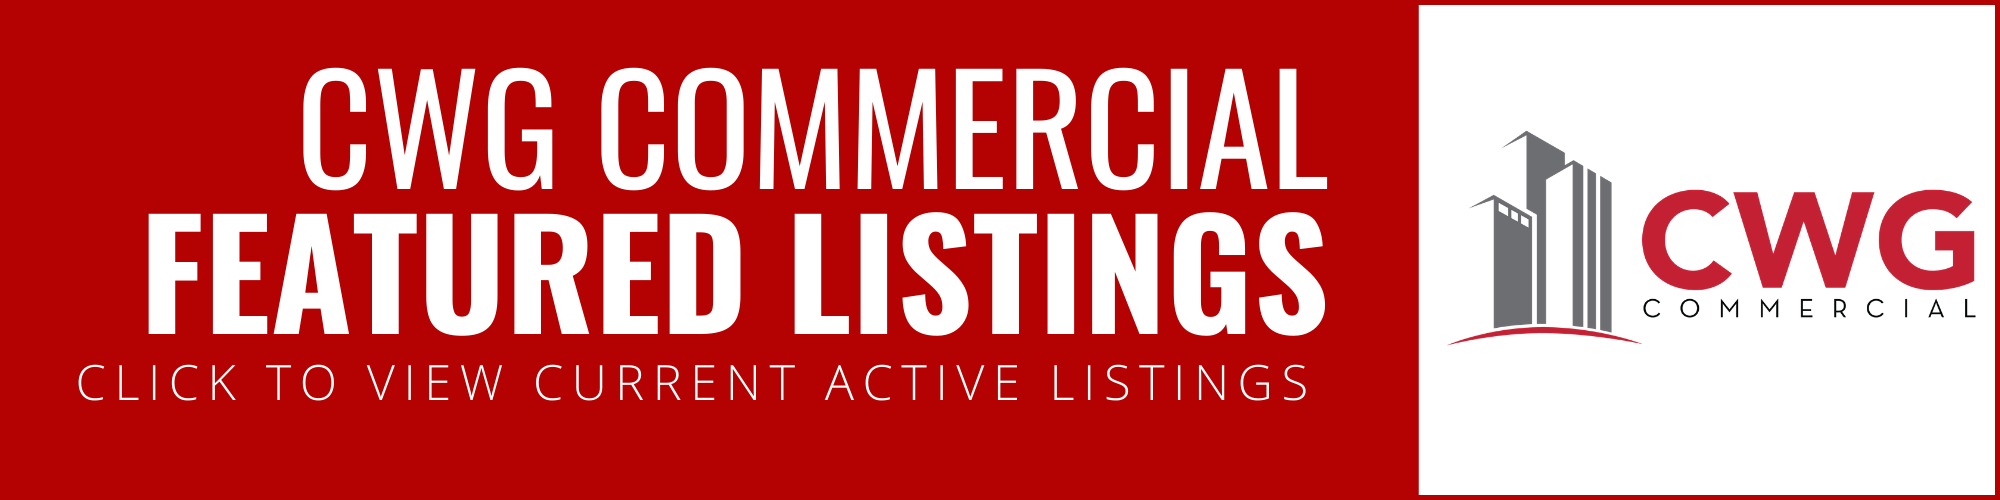 CWG Commercial Active Listings